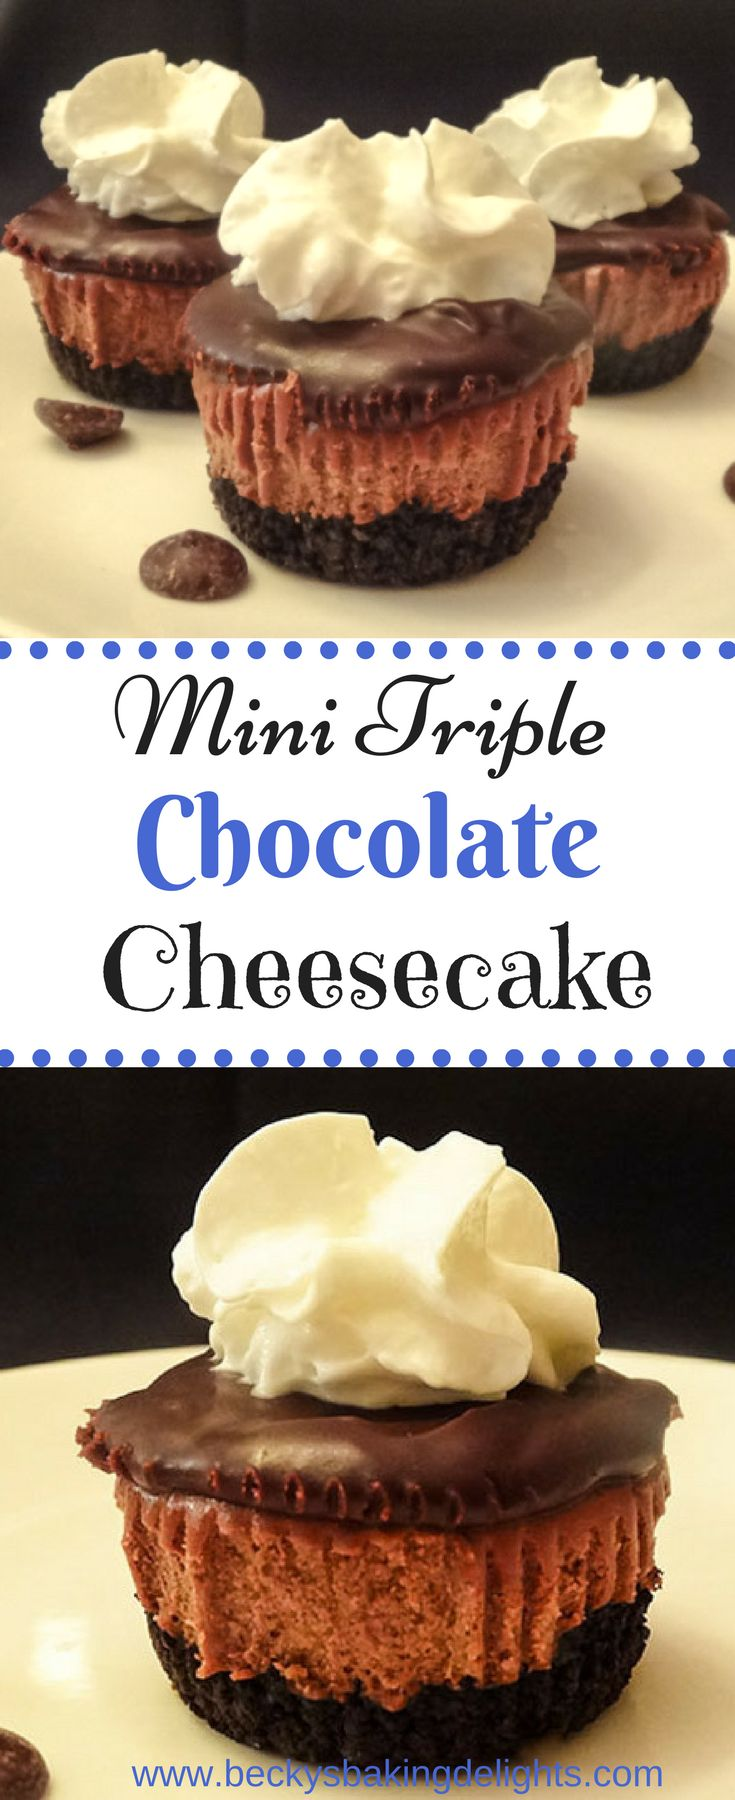 These mini triple chocolate cheesecakes are loaded with layer upon layer of chocolate decadence. It has a chocolate oreo crust, a cheesecake filling infused with dark chocolate and cocoa, and a semisweet chocolate ganache. This is a chocolate lover's dream.